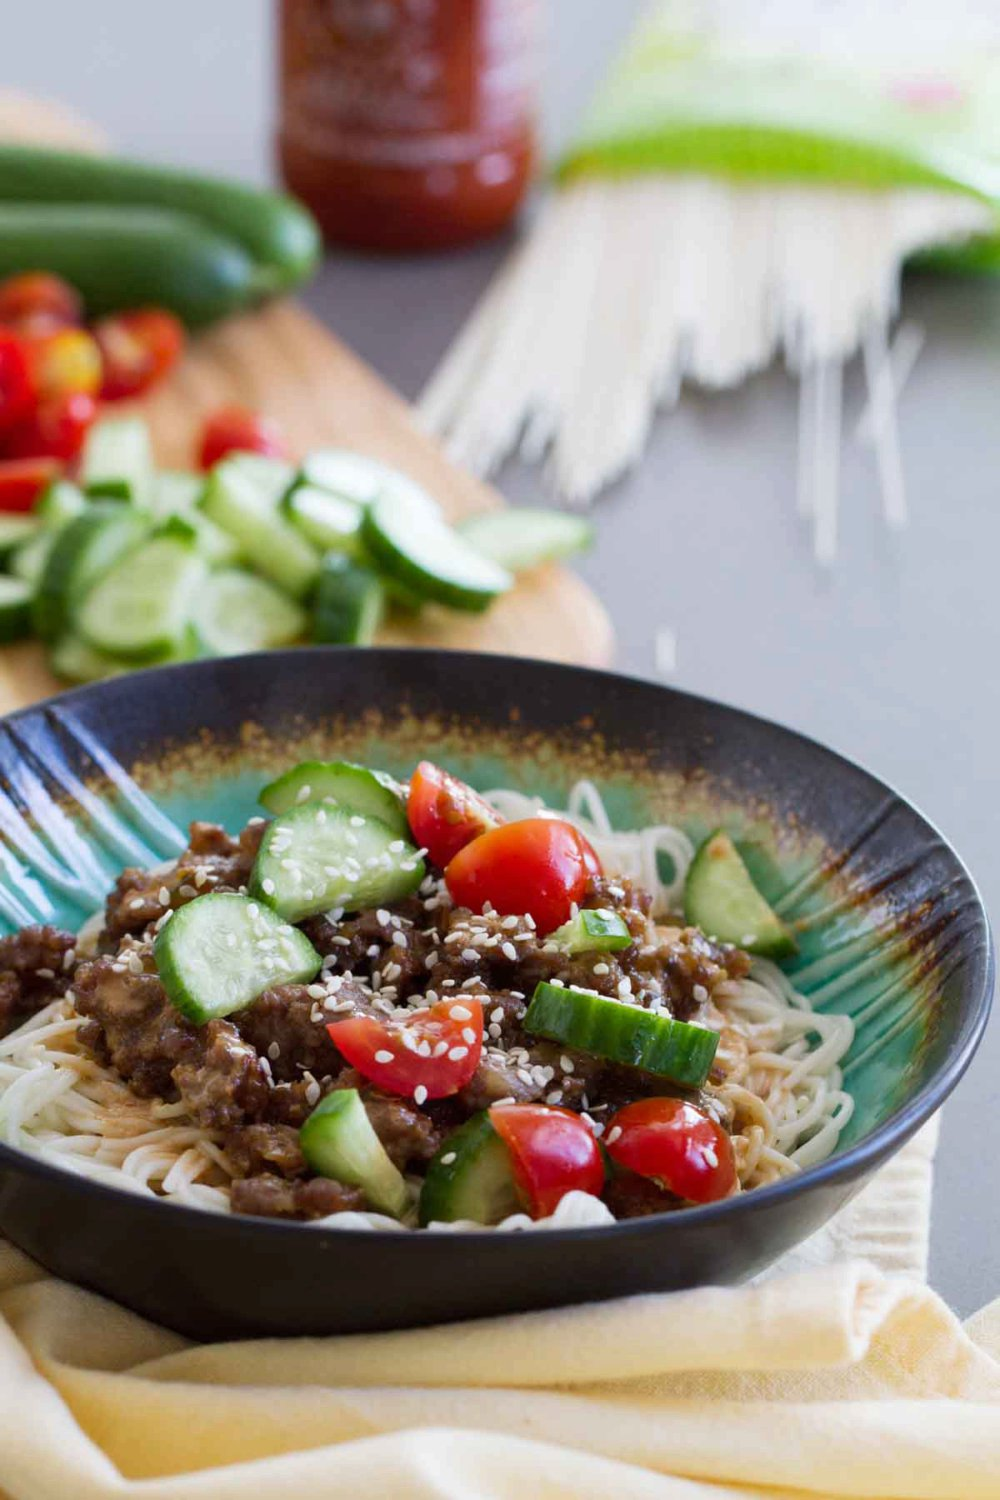 Spicy Pork Noodle Bowl